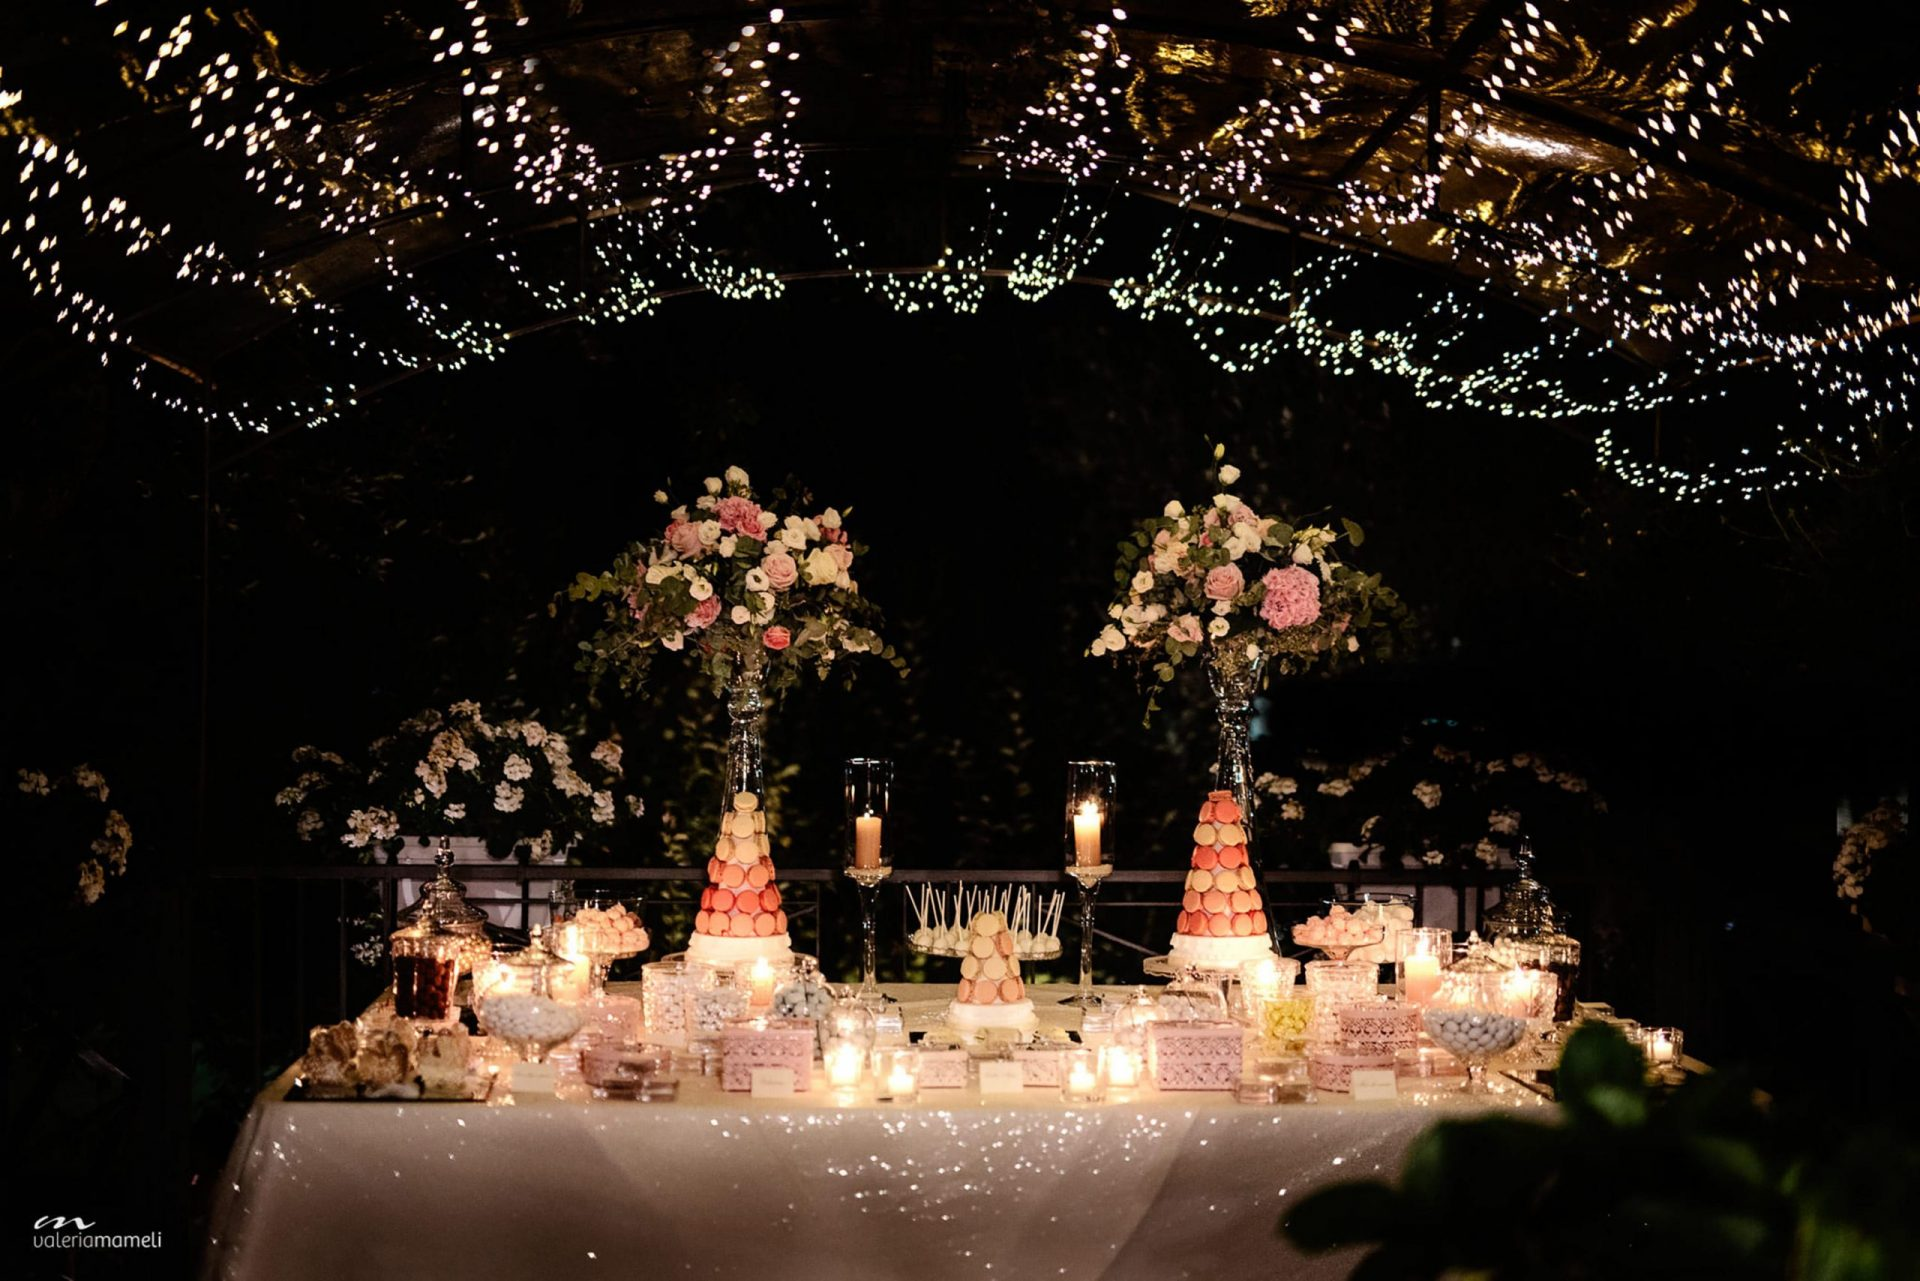 Francesca and Francesco, scenographic sweet table